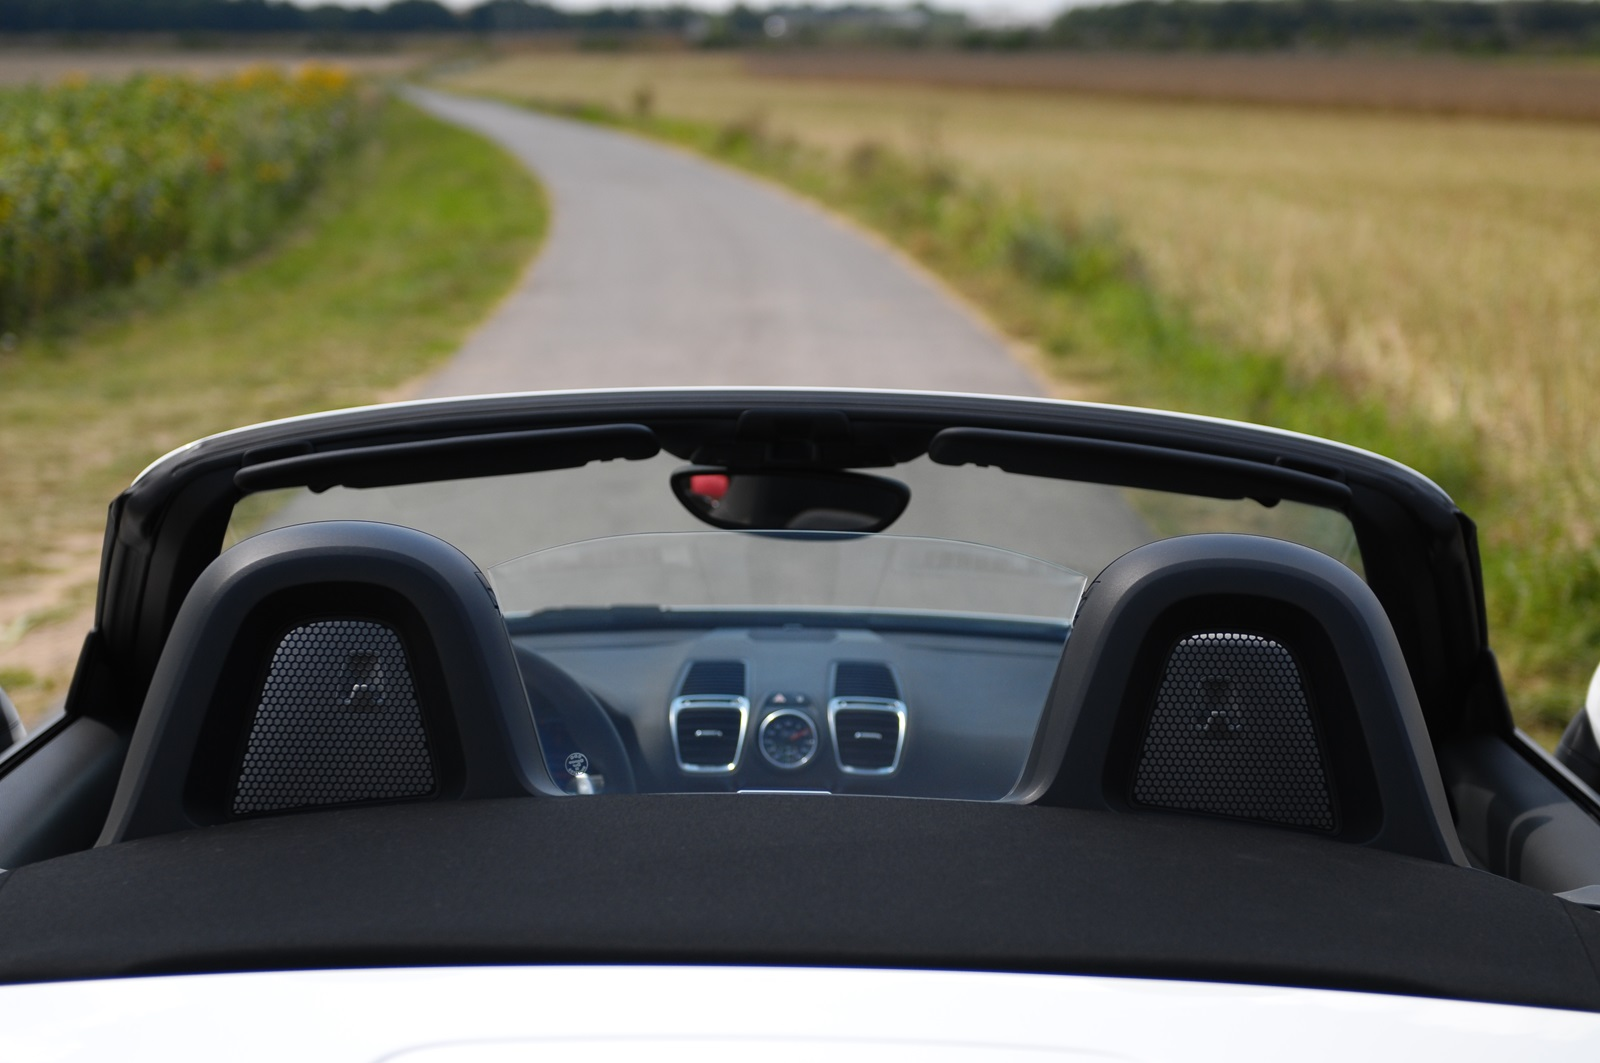 Porsche Boxster Glass Windschott Glass Winddeflector Frangivento